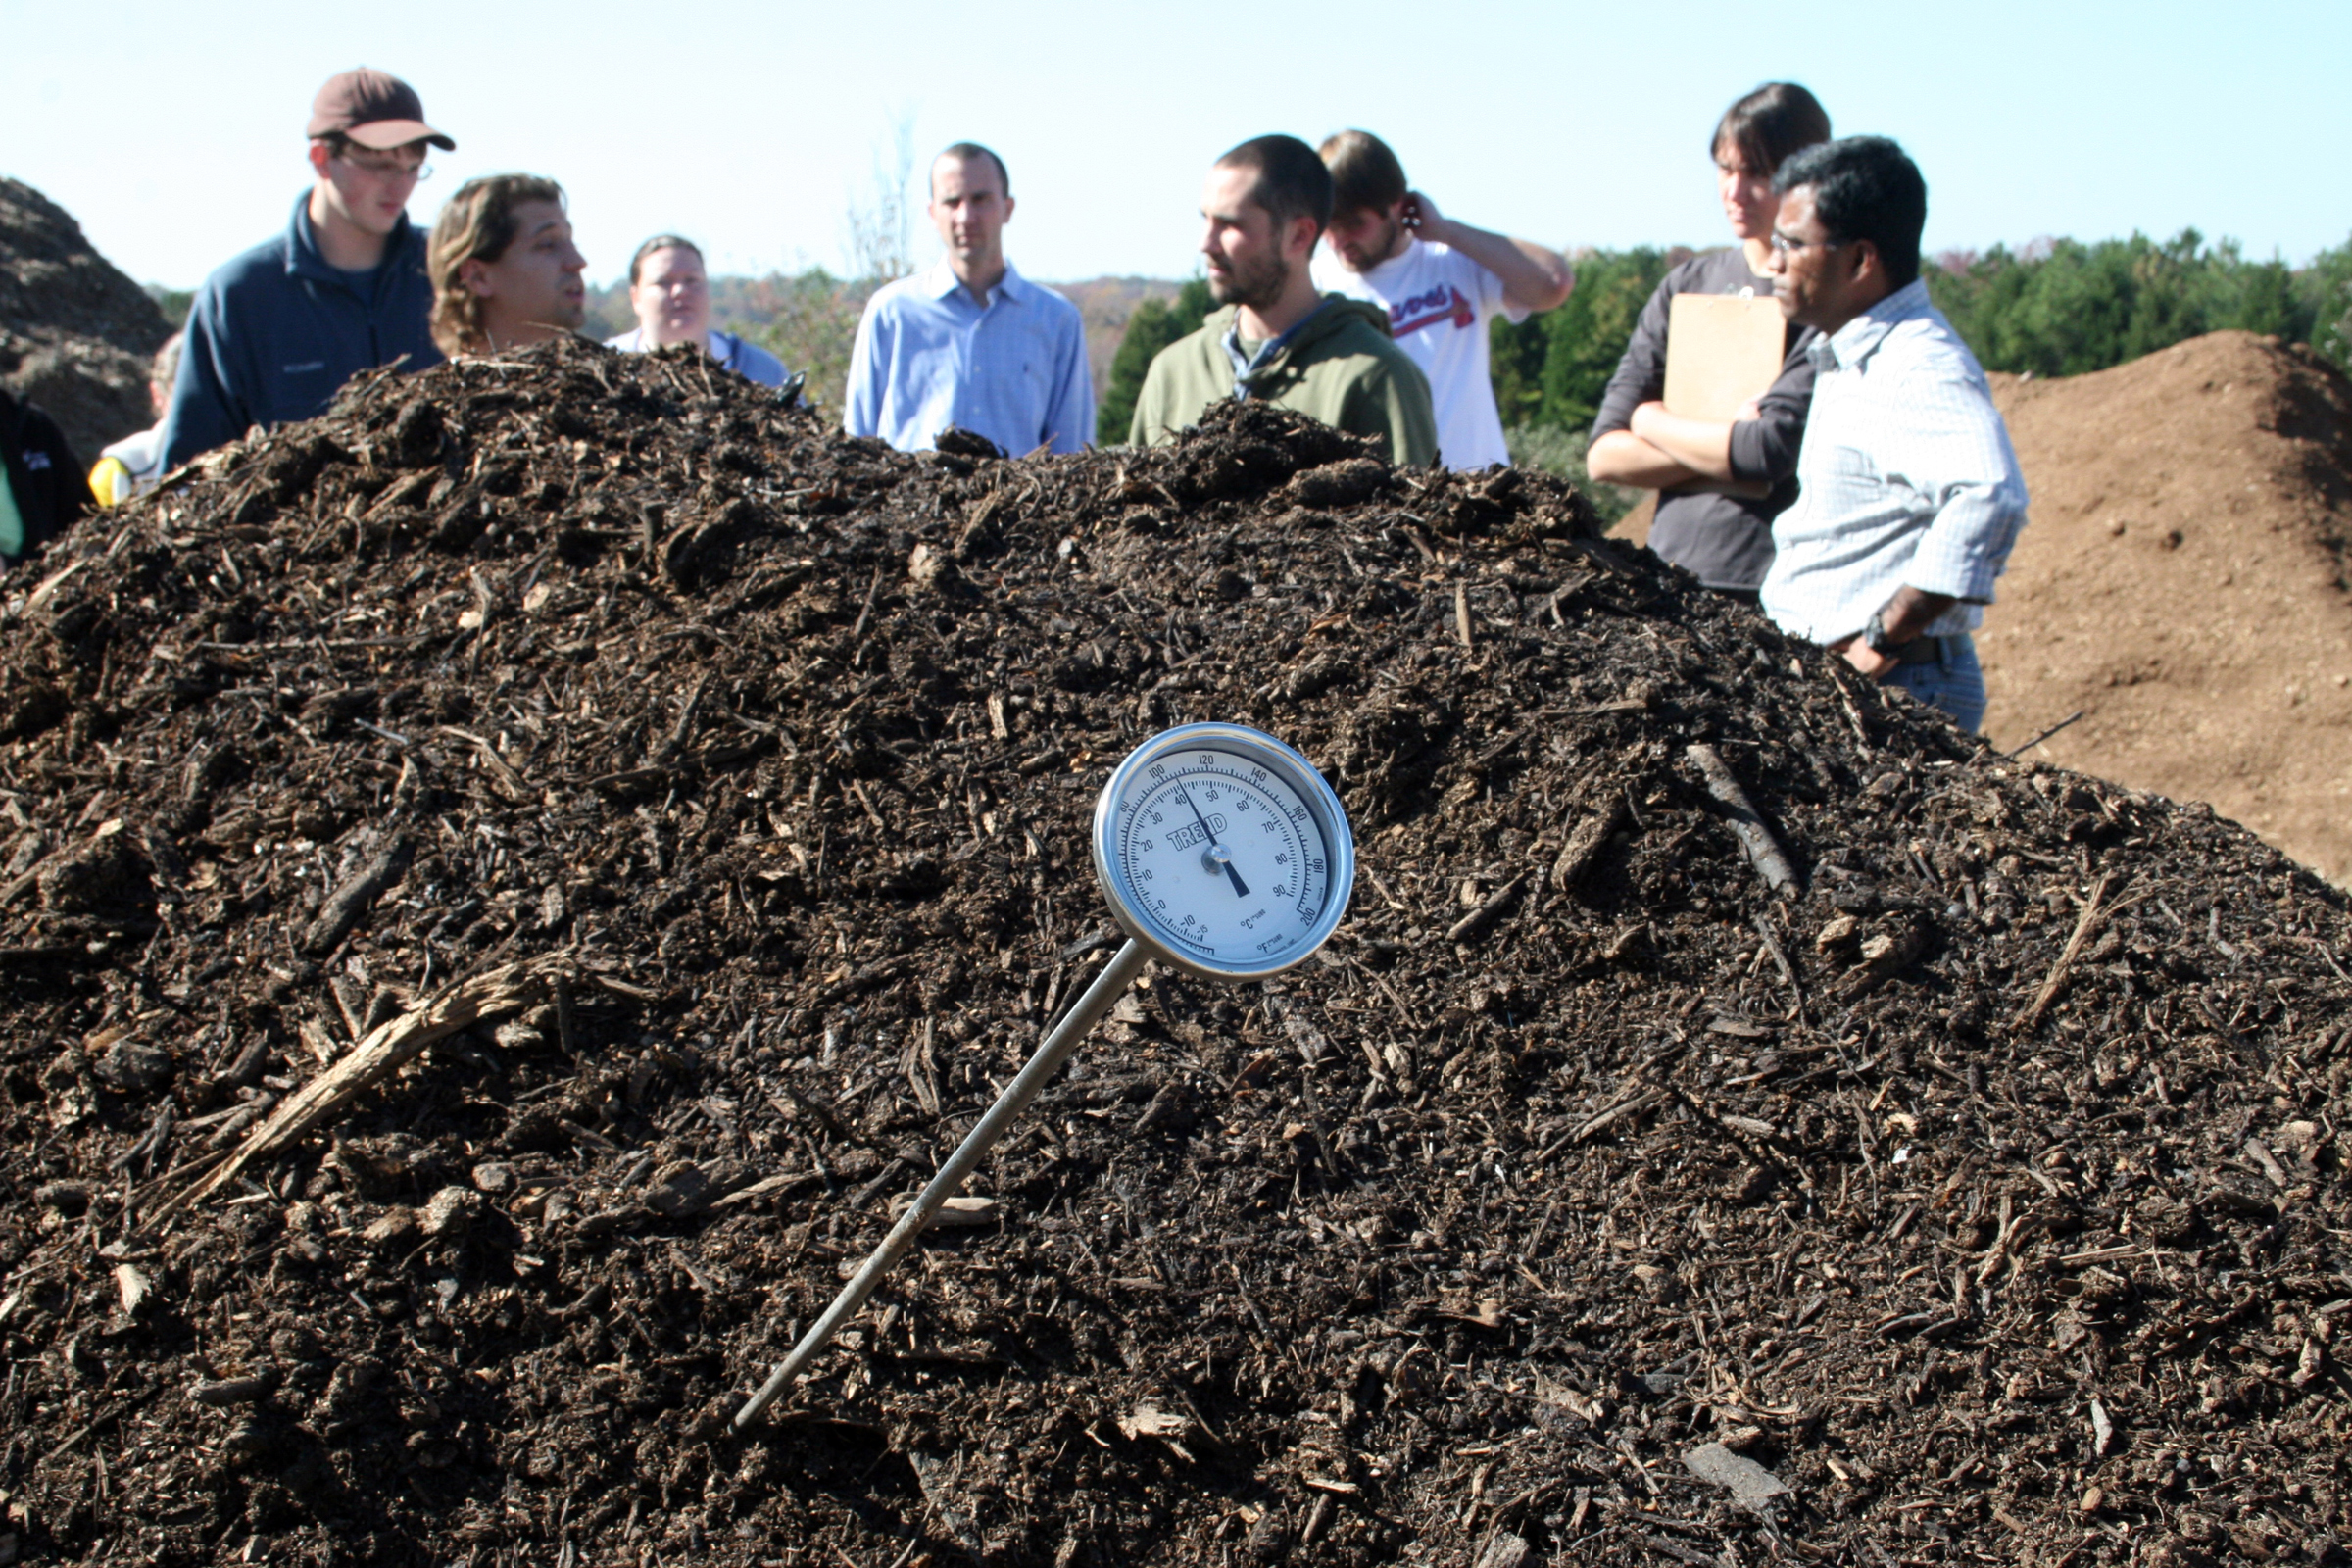 If a compost pile reaches temperatures in the range of 110 to 160 degrees Fahrenheit, most disease-causing organisms should be killed. If you are not sure if your compost pile reaches these high temperatures, it is best to discard diseased material.